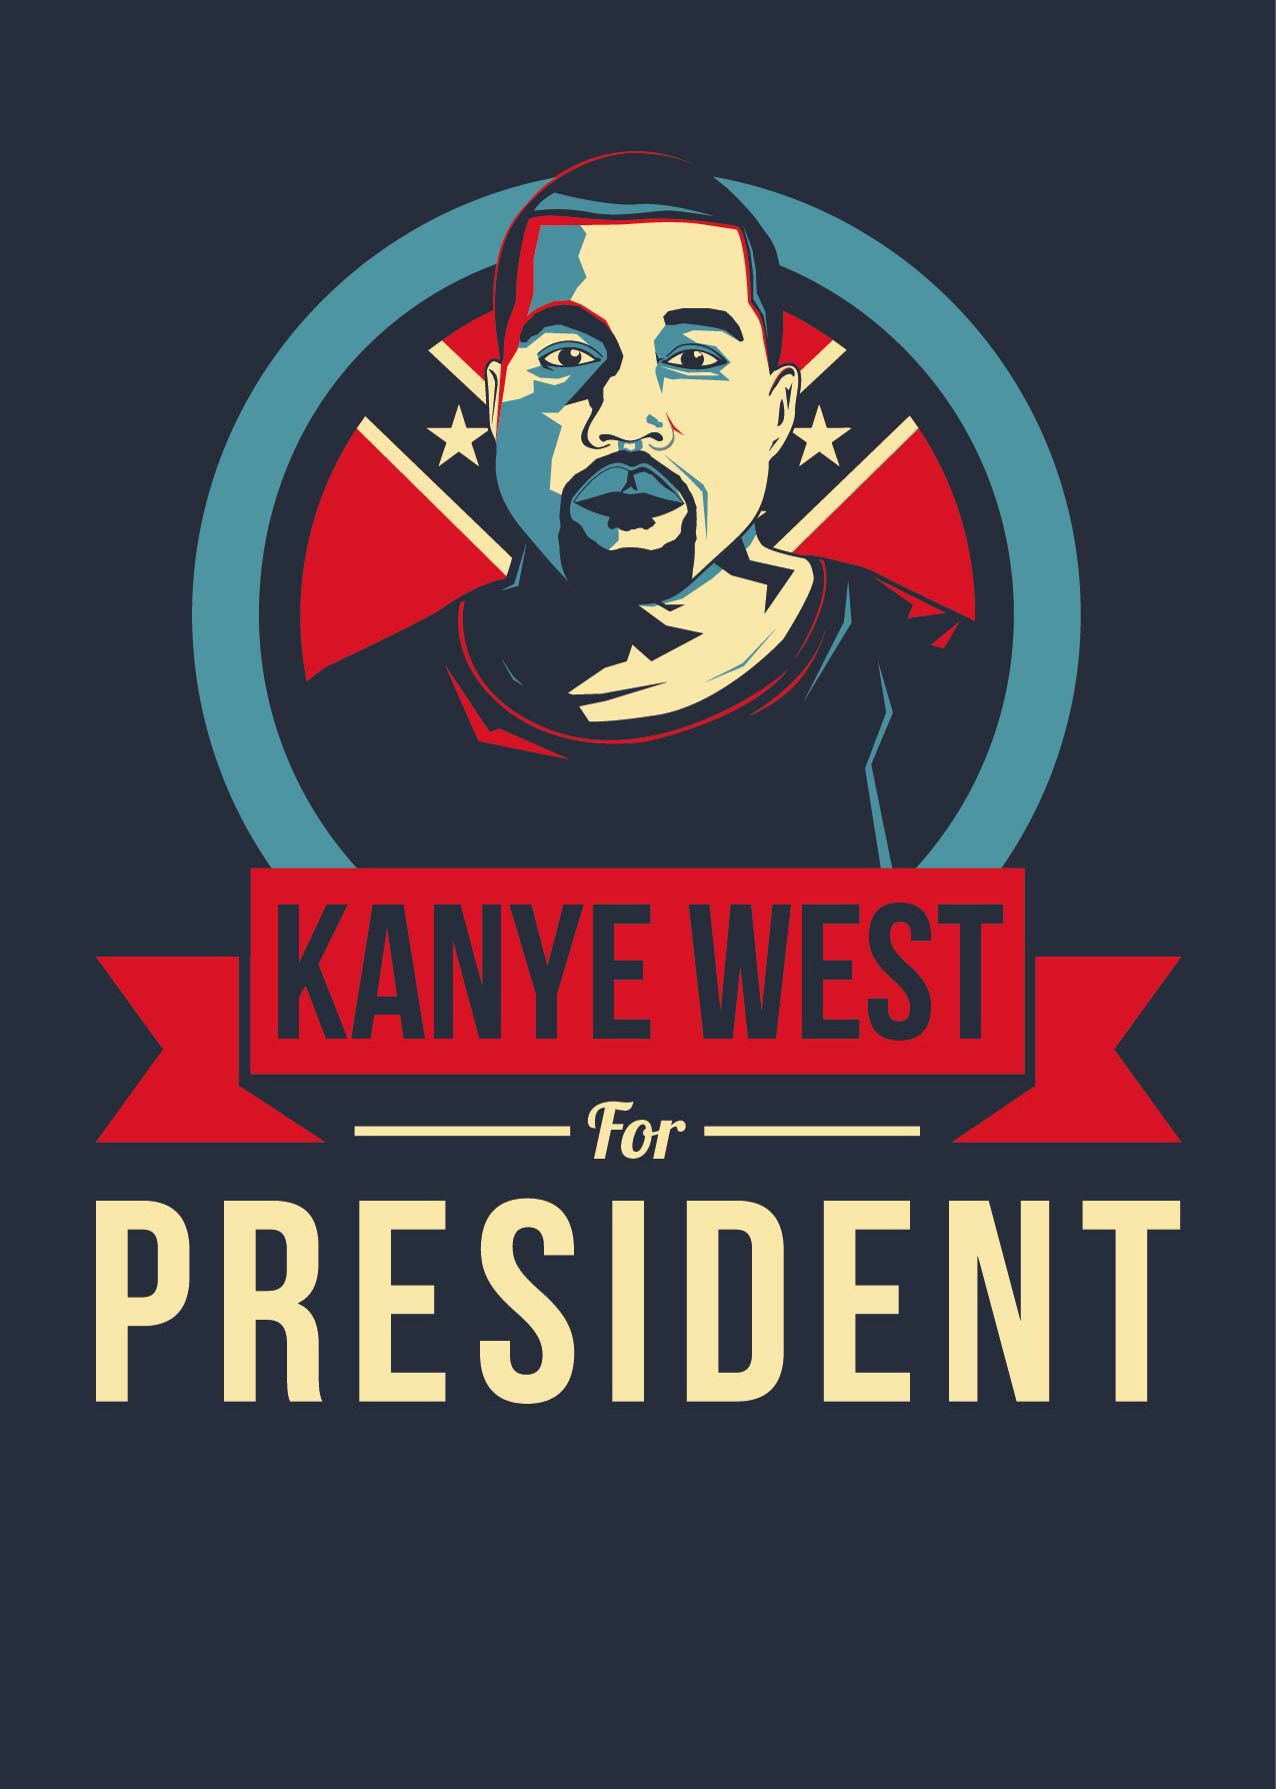 Kanye west iphone wallpaper tumblr - Kanye West For President Poster